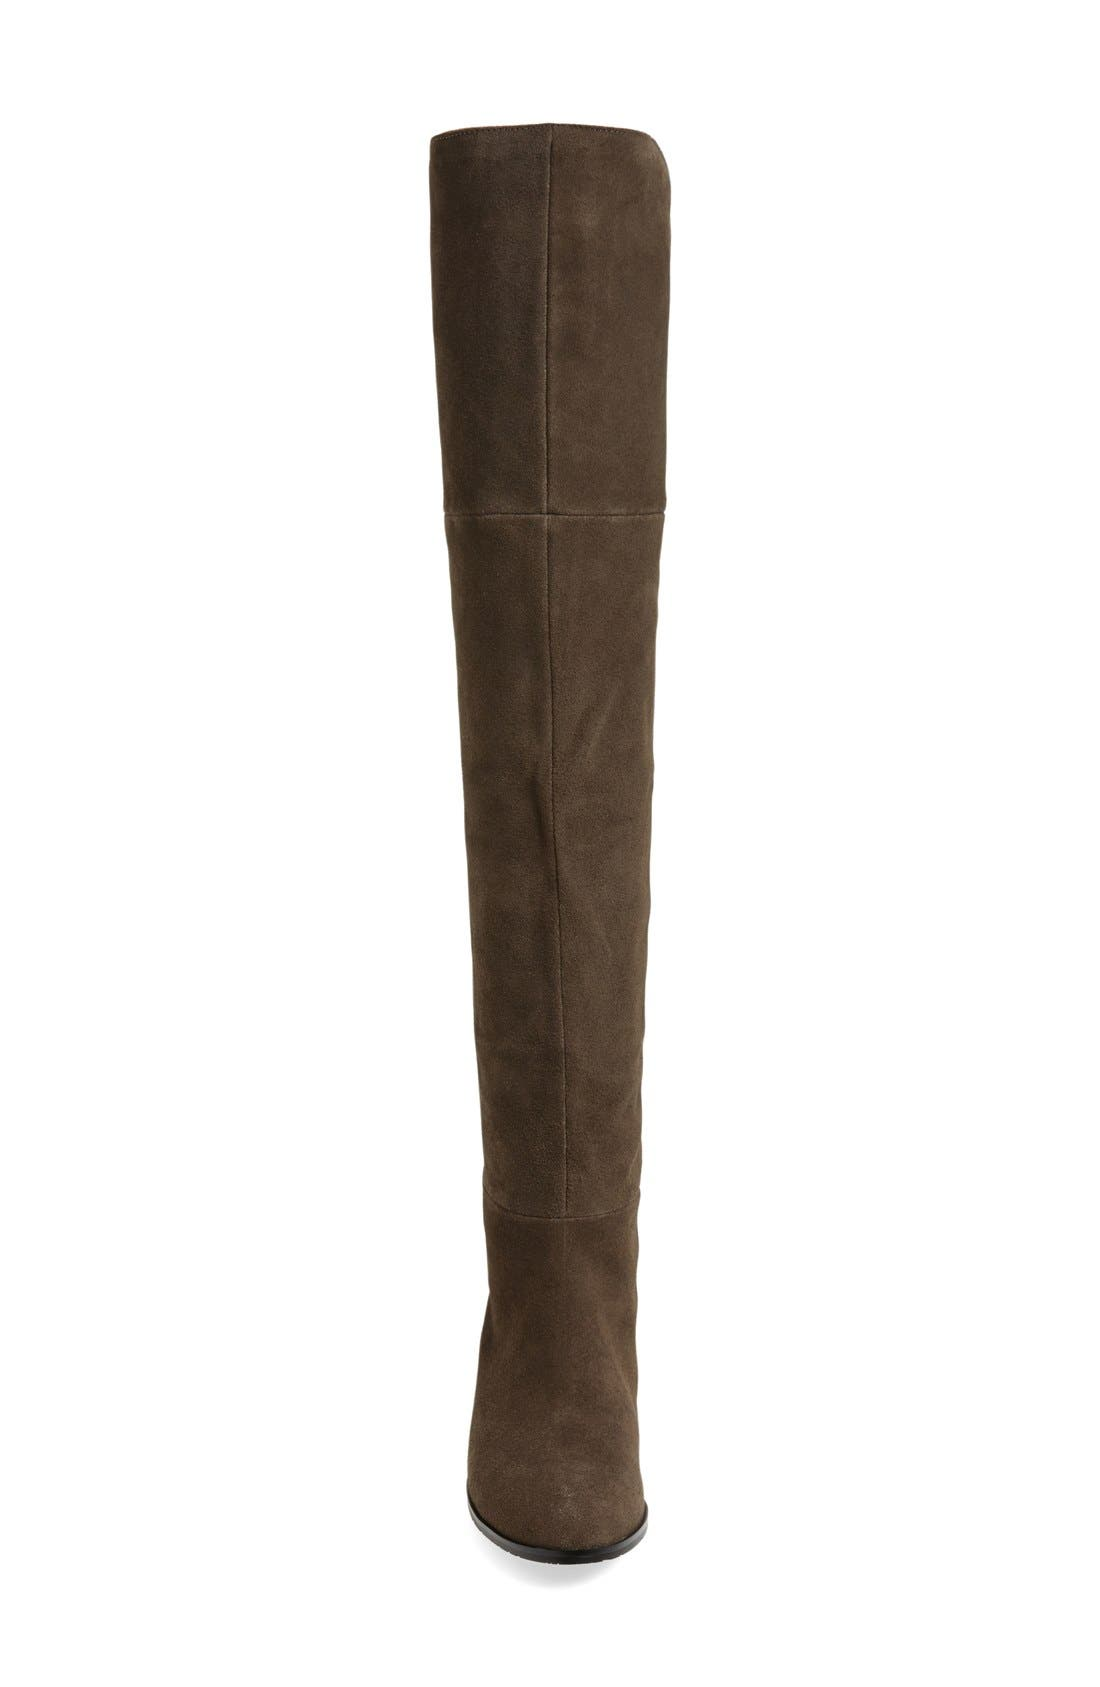 Alternate Image 3  - Chinese Laundry 'Radiance' Over The Knee Boot (Women)